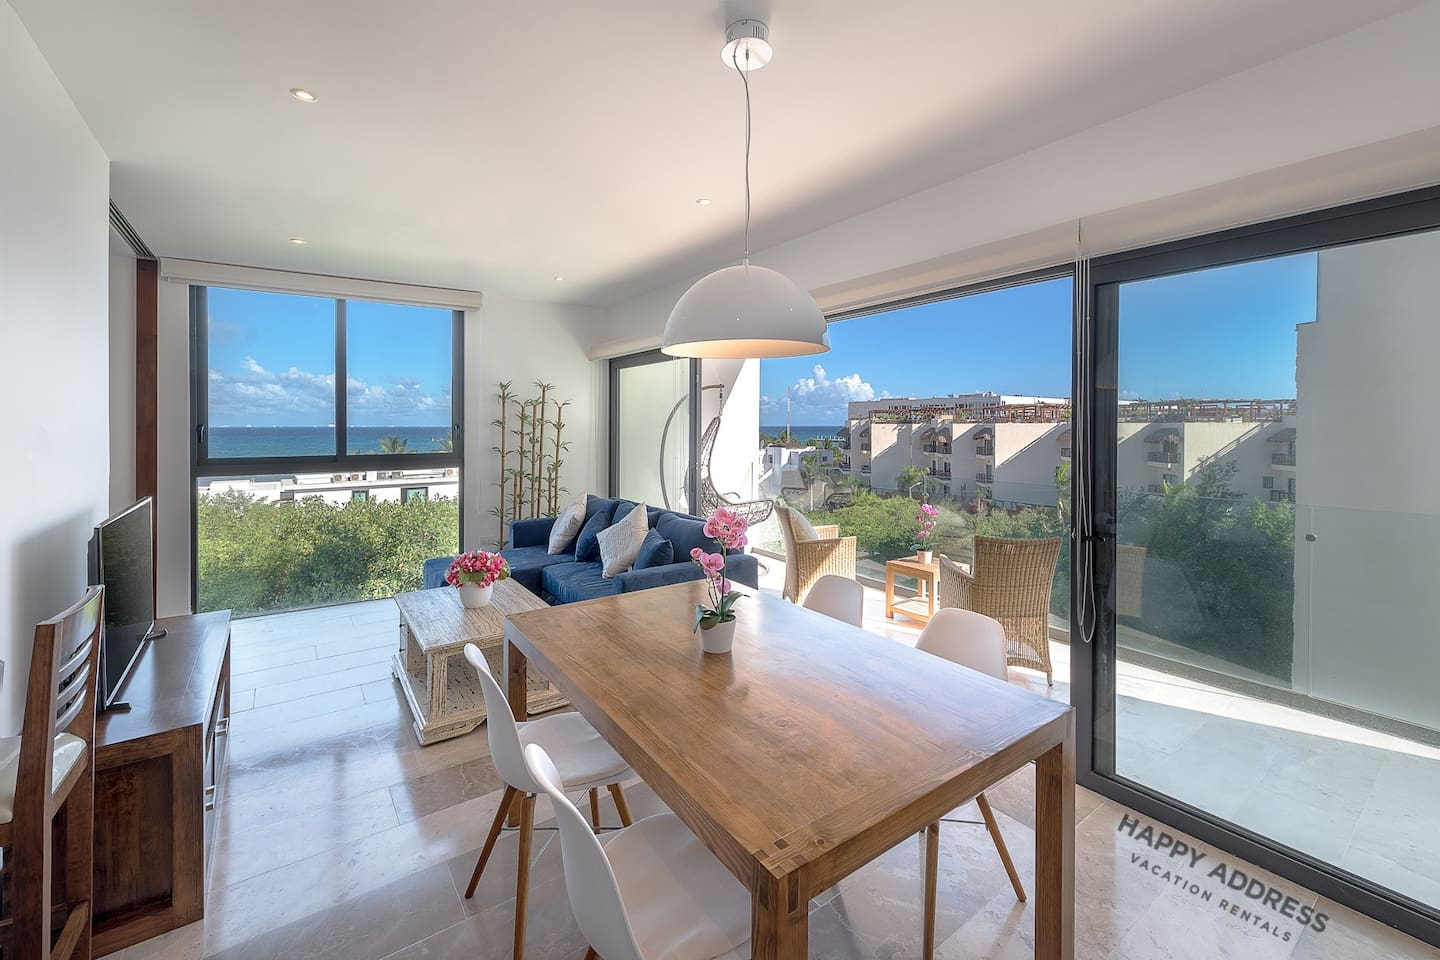 Swanky 1BR condo with ocean view by Happy Address